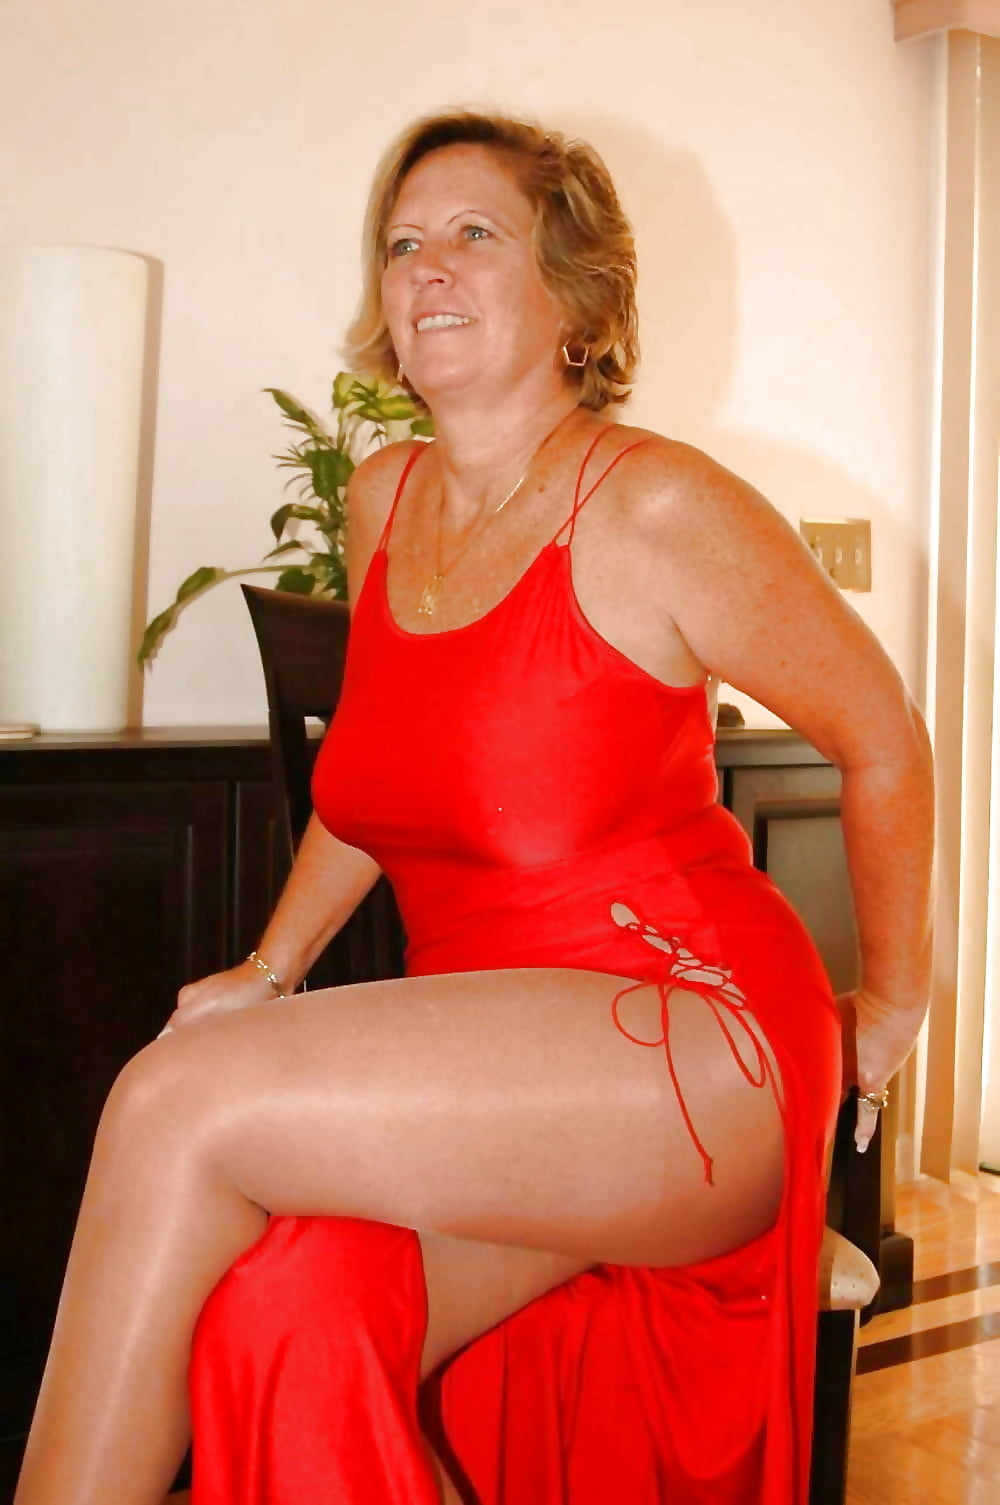 mature-women-daily-pictures